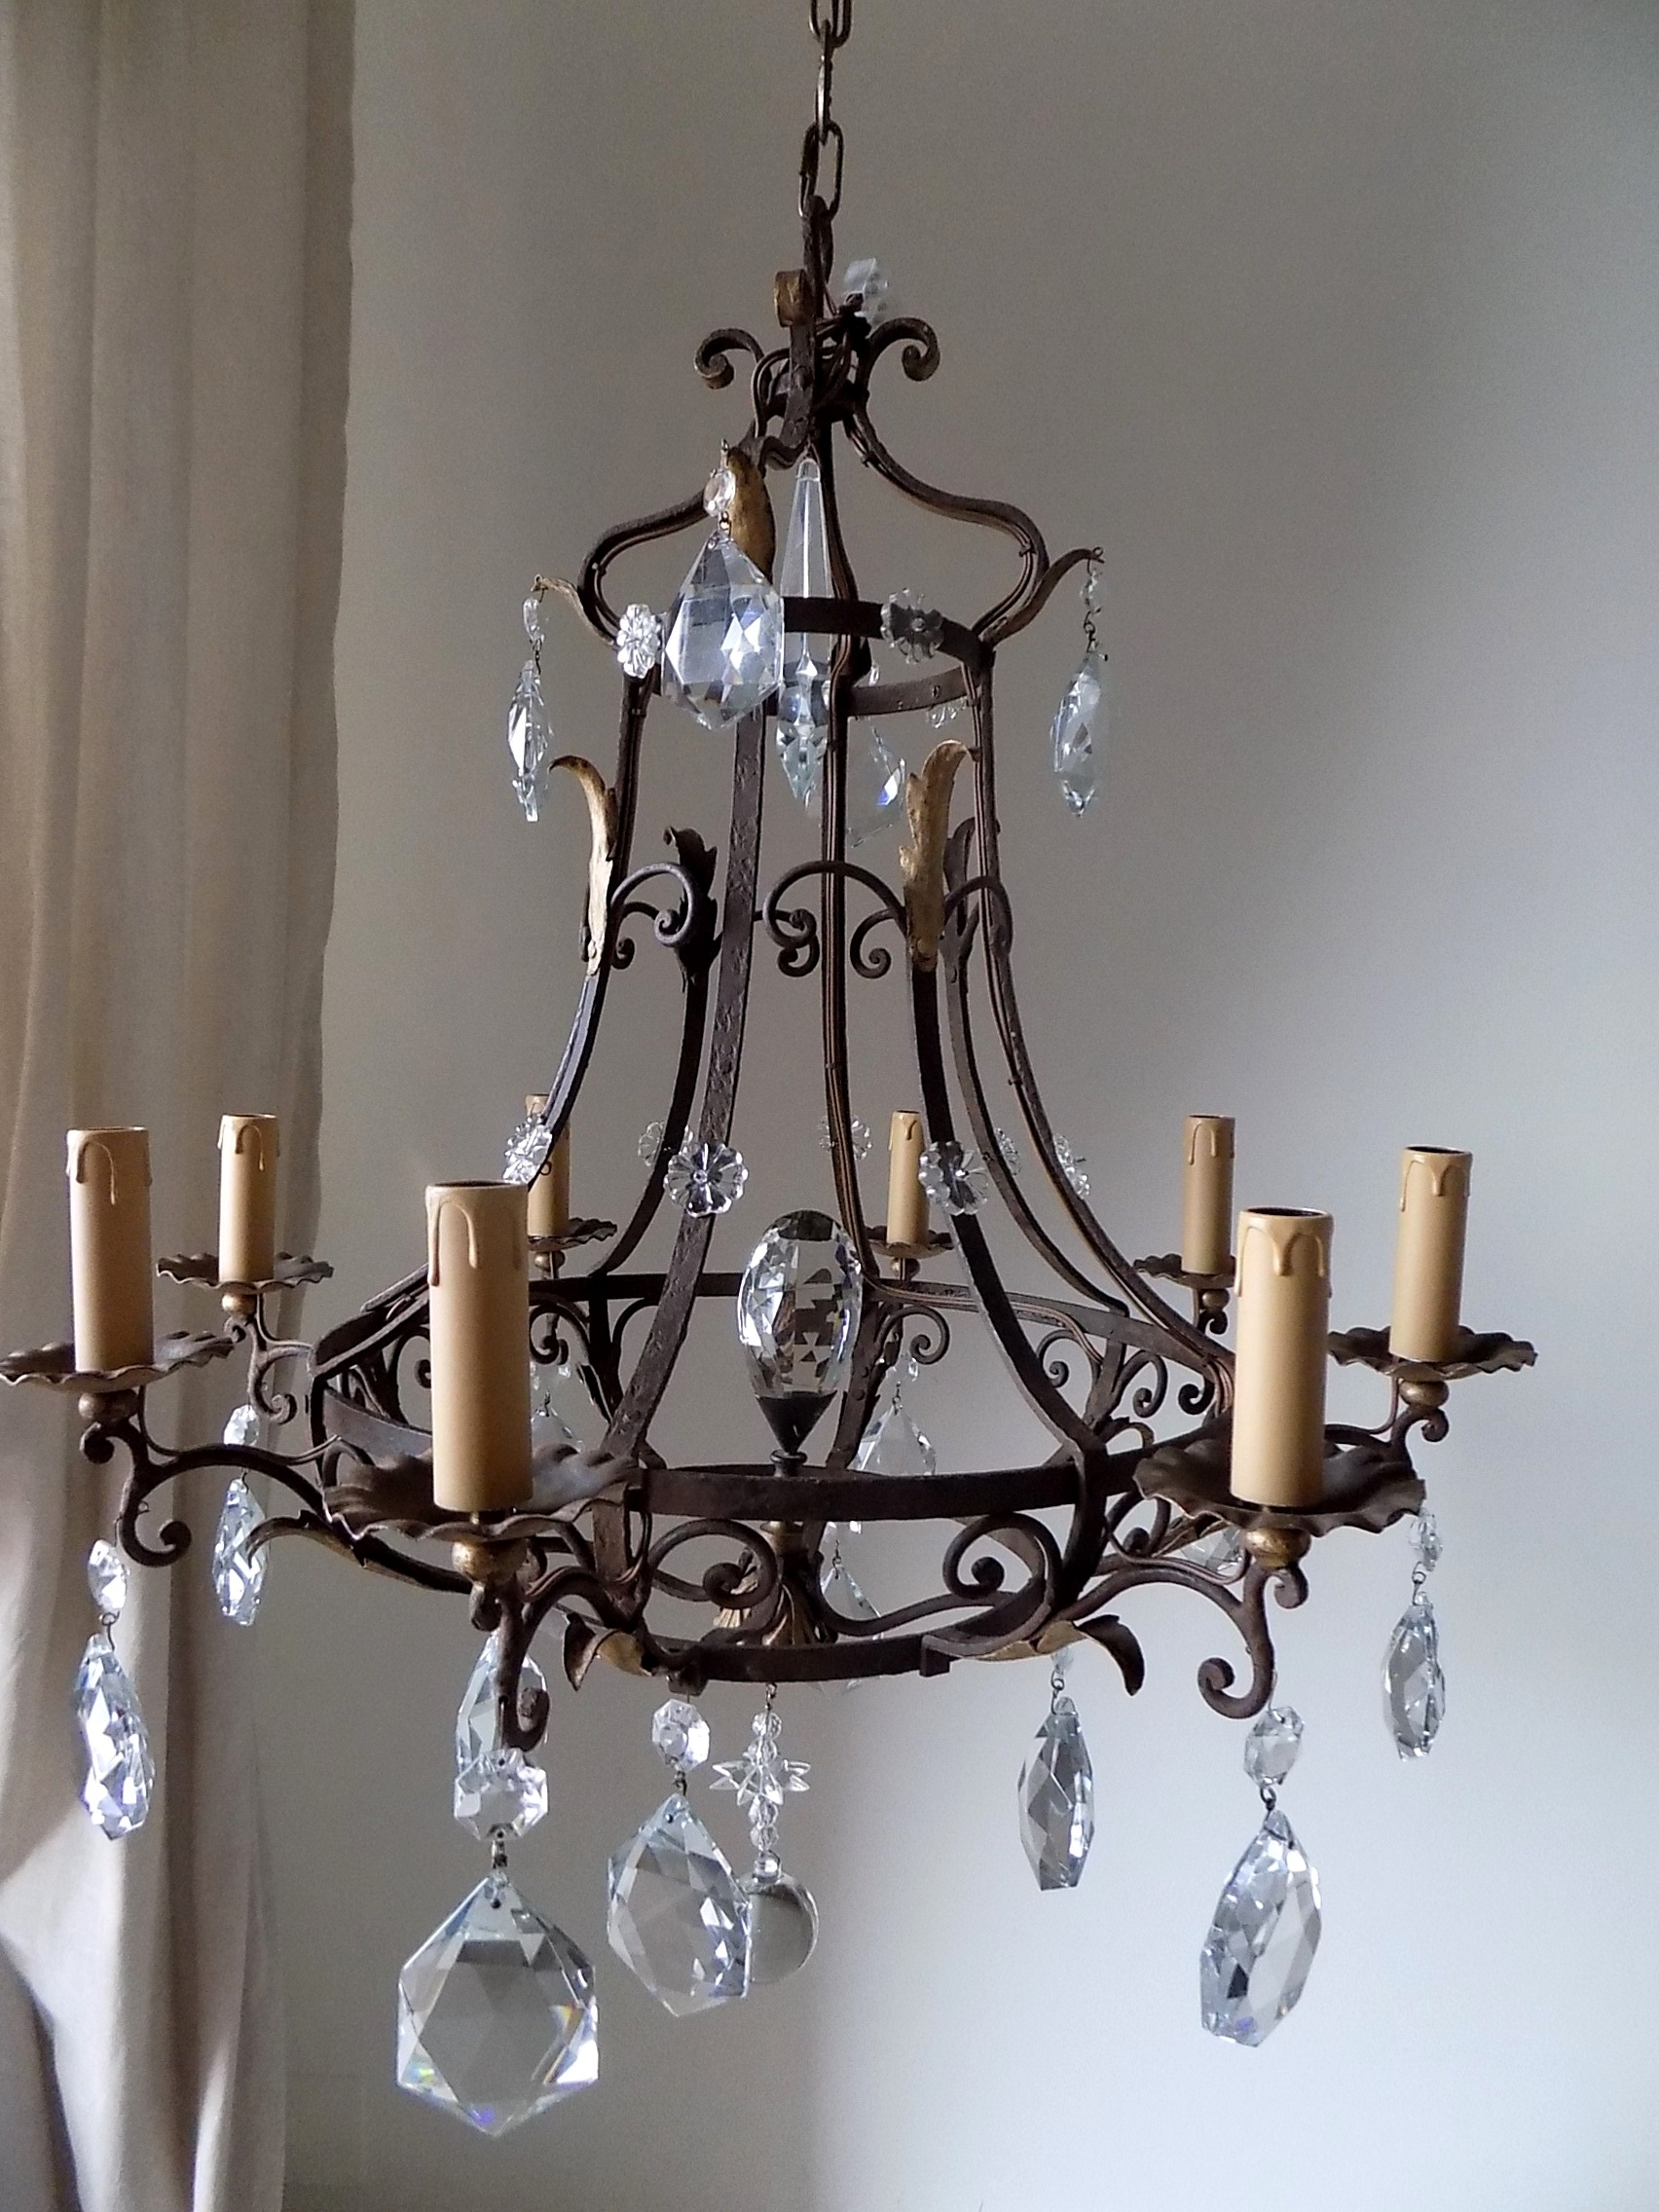 2019 Antique French Massive Hand Forged Wrought Iron Chandelier – Lorella Dia In Wrought Iron Chandeliers (View 4 of 20)